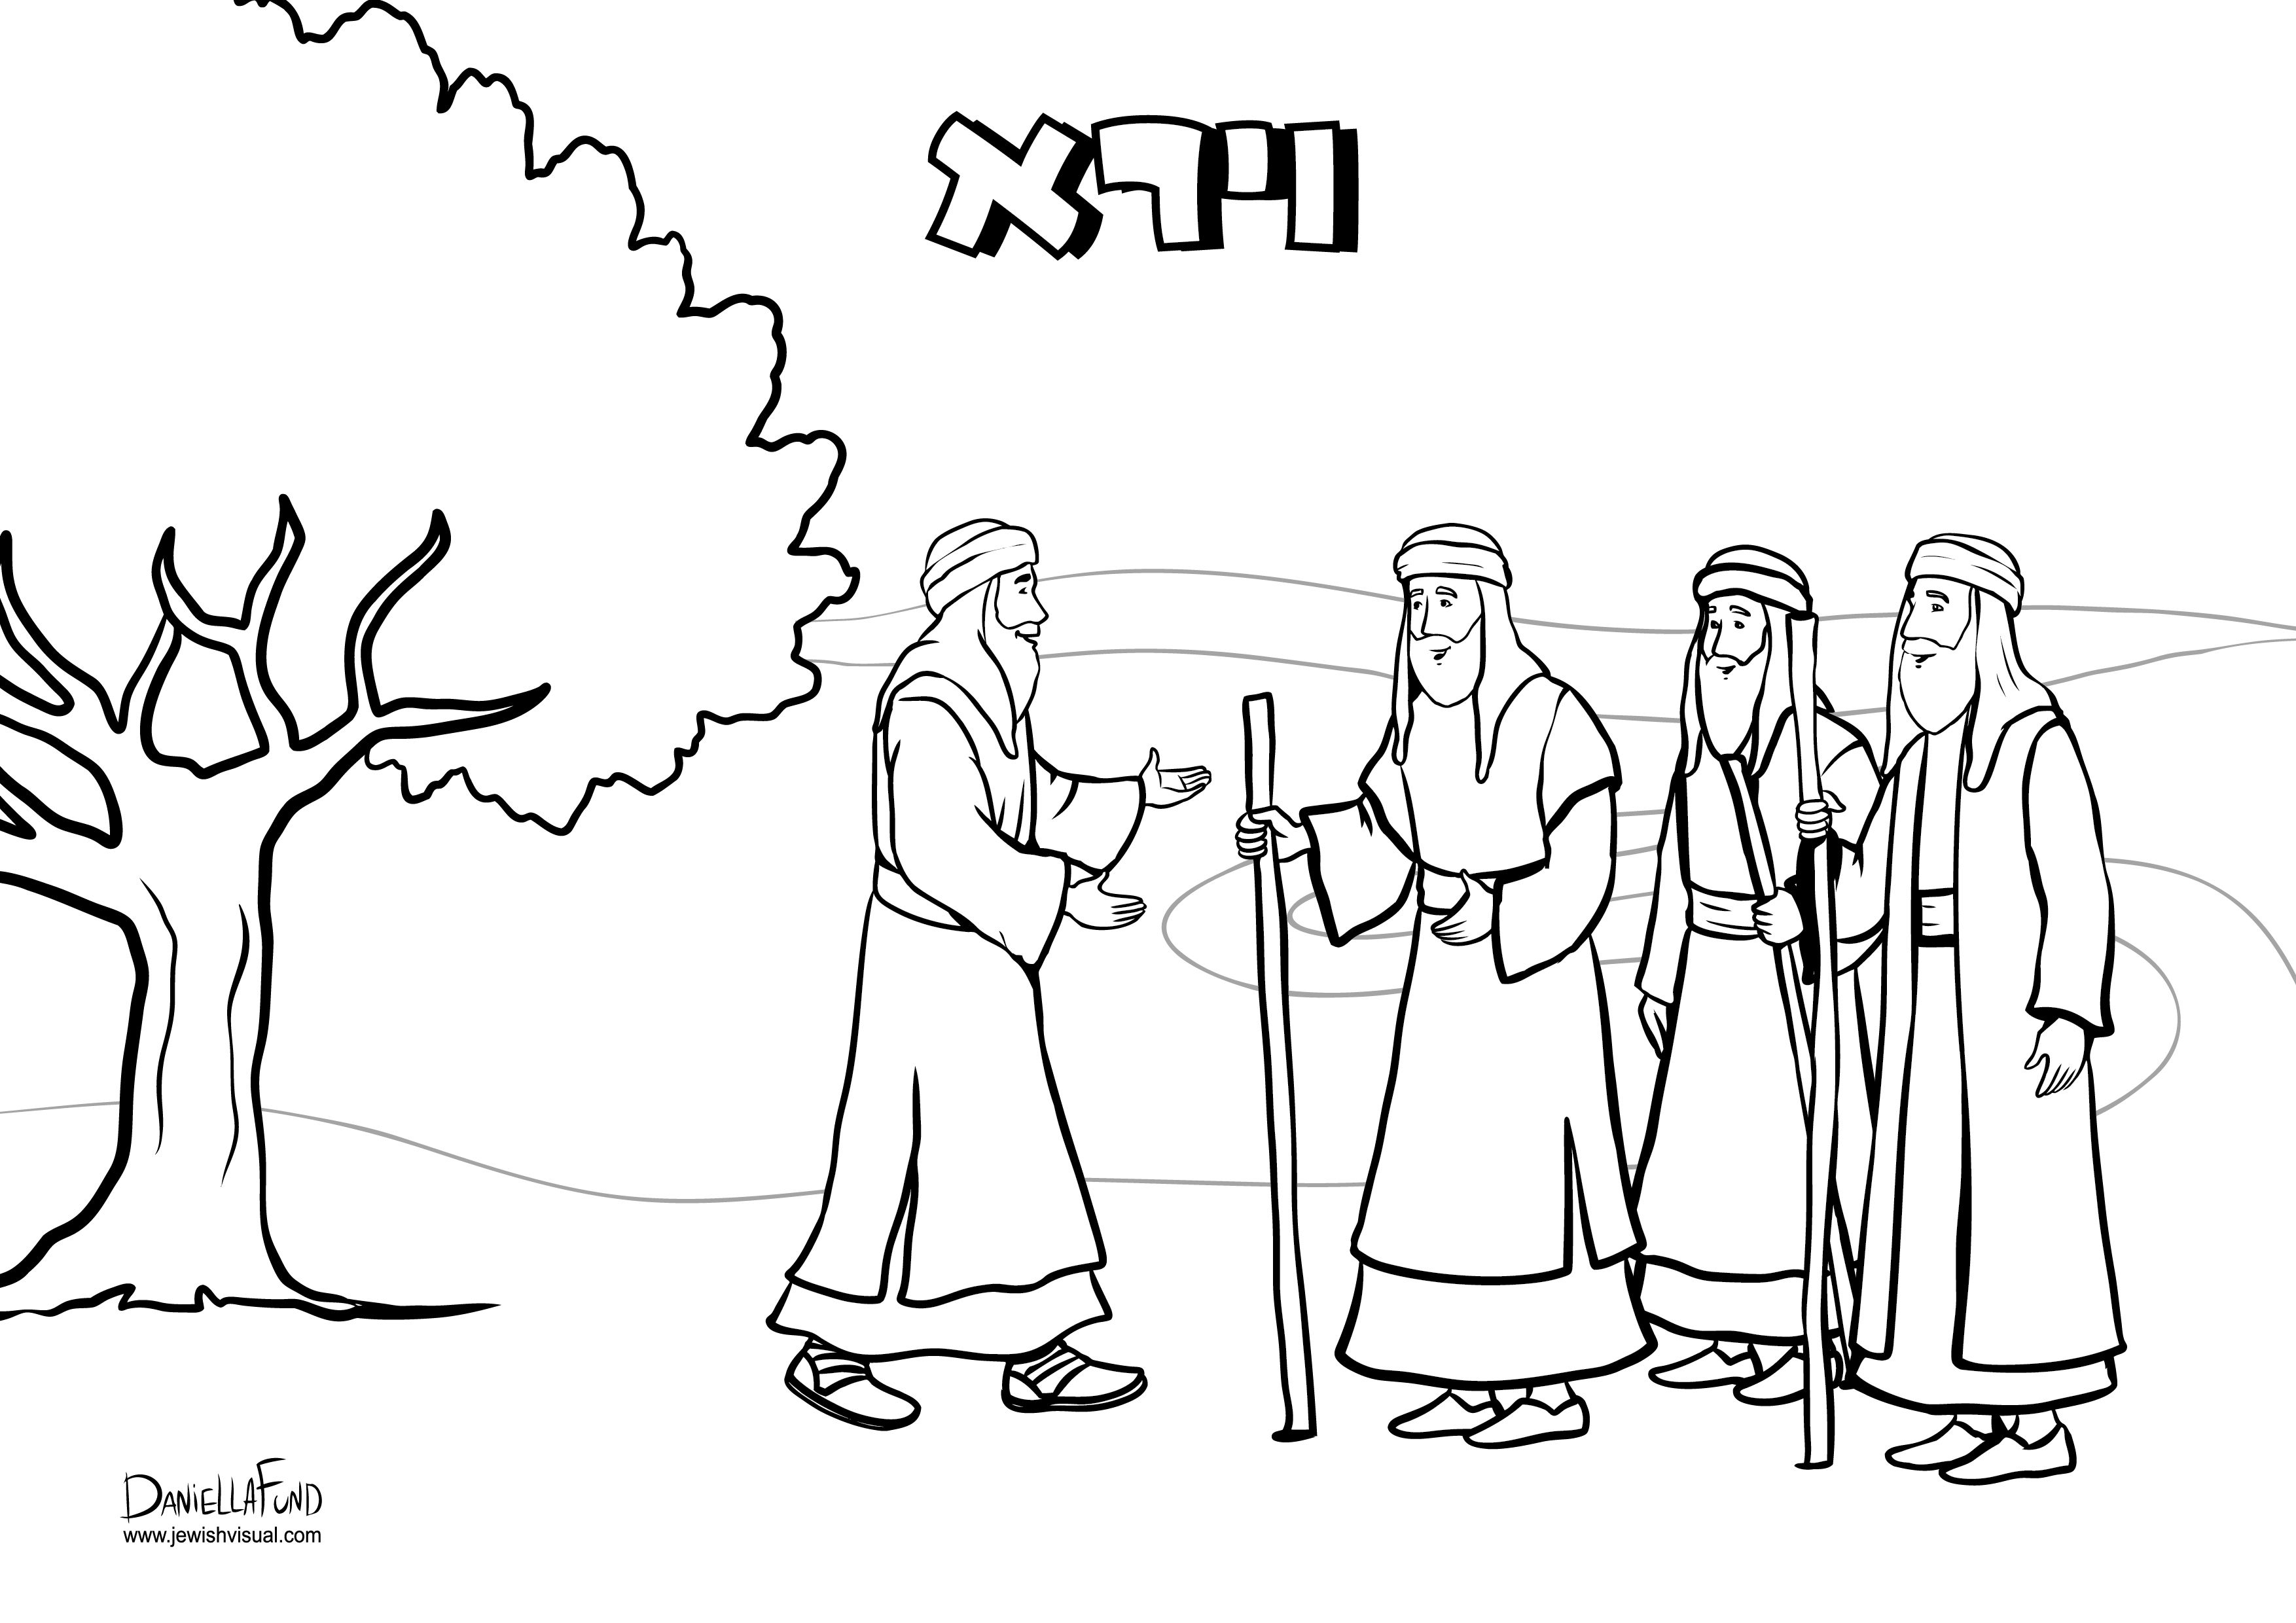 lulav and etrog picture lulav and etrog coloring pages at getdrawings free download and etrog picture lulav